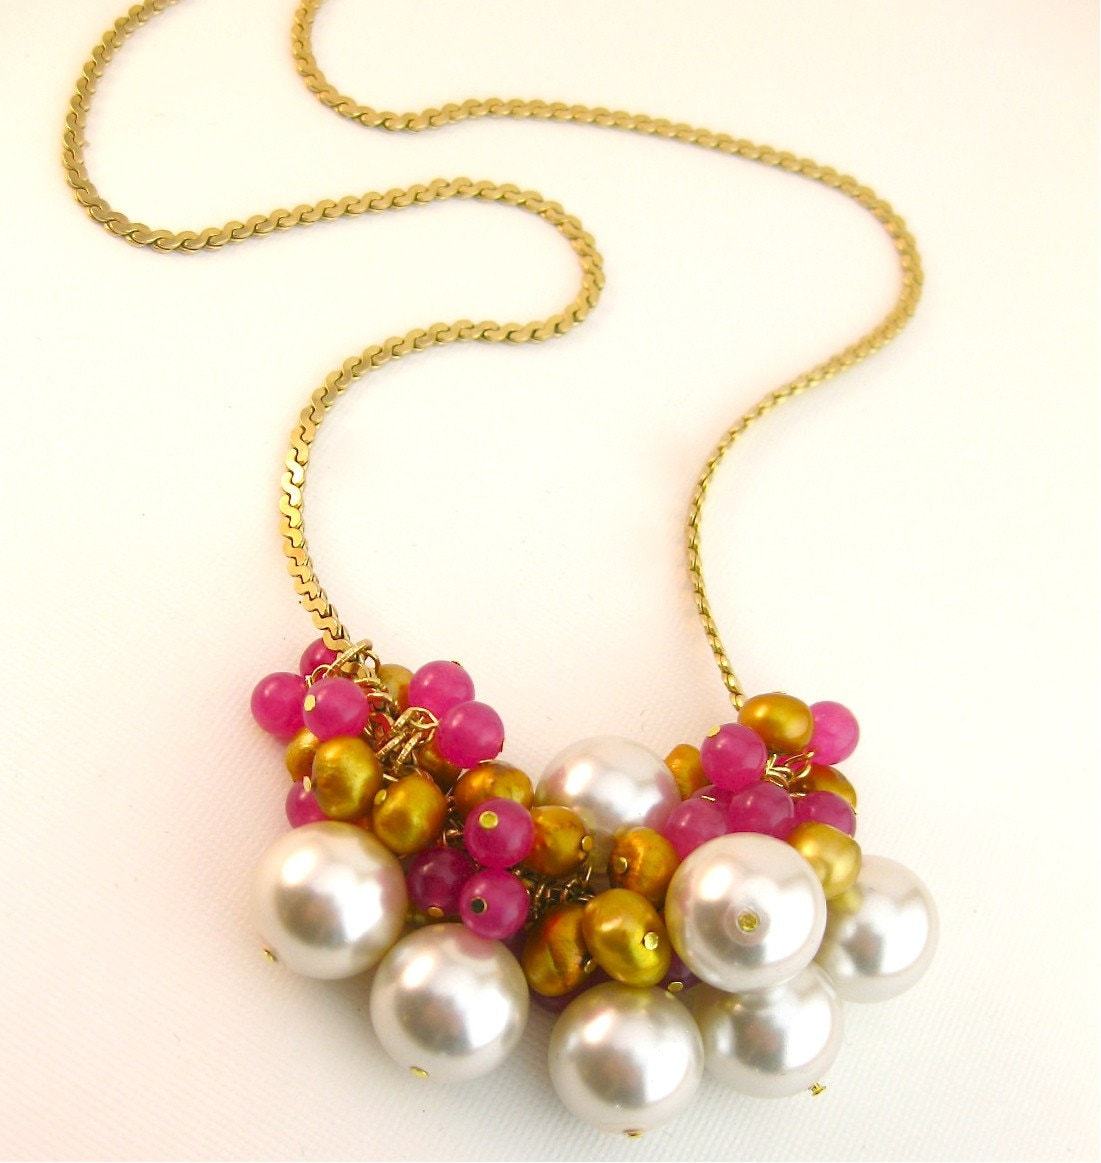 Candy Coated Cluster Necklace Reclaimed Jewelry